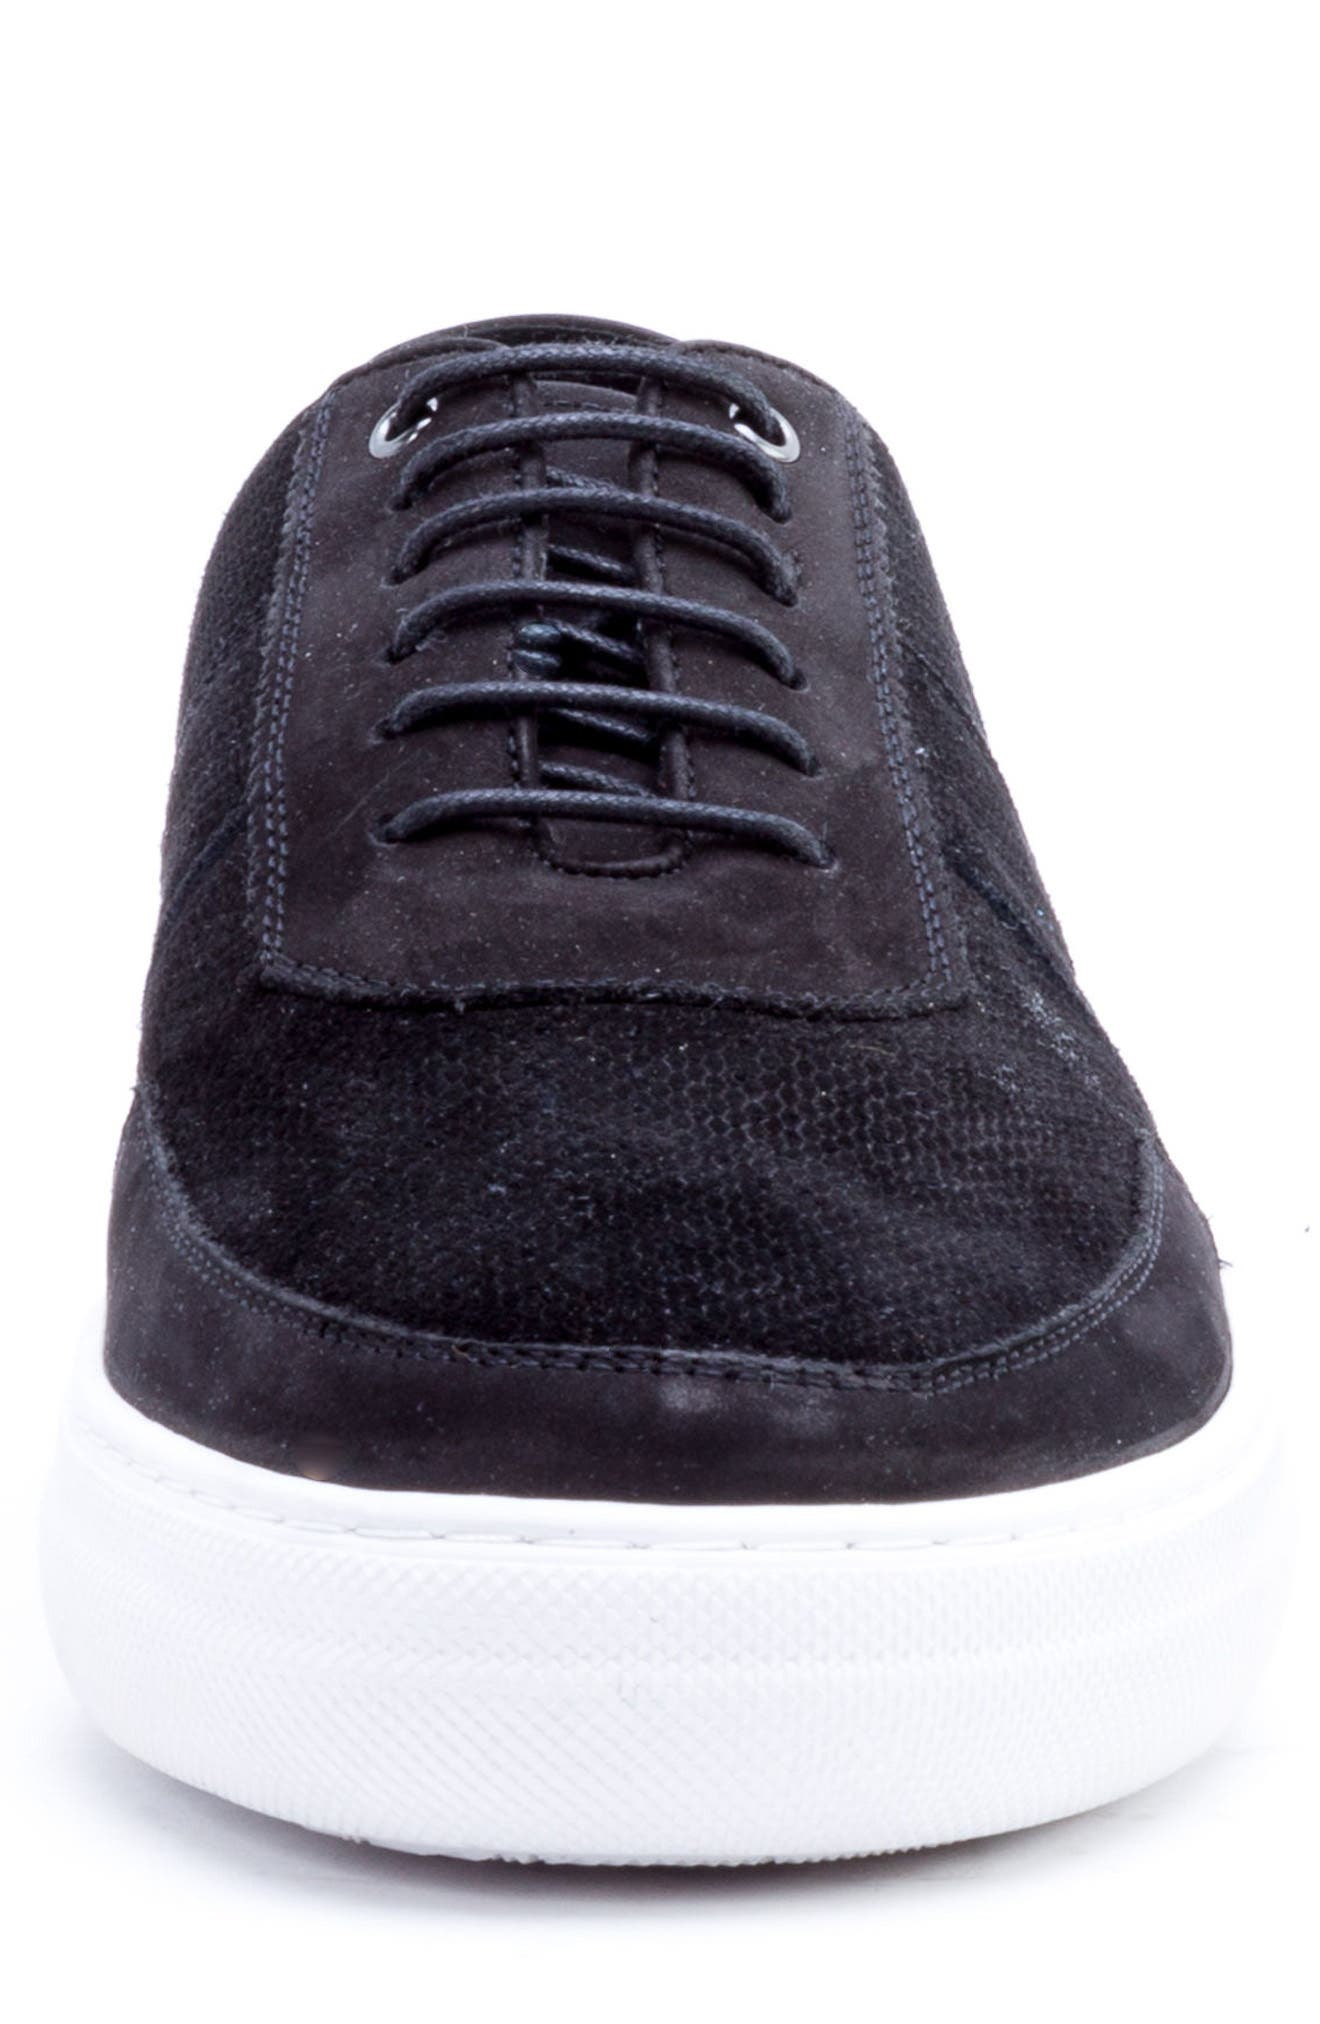 House Low Top Sneaker,                             Alternate thumbnail 4, color,                             BLACK SUEDE/ LEATHER